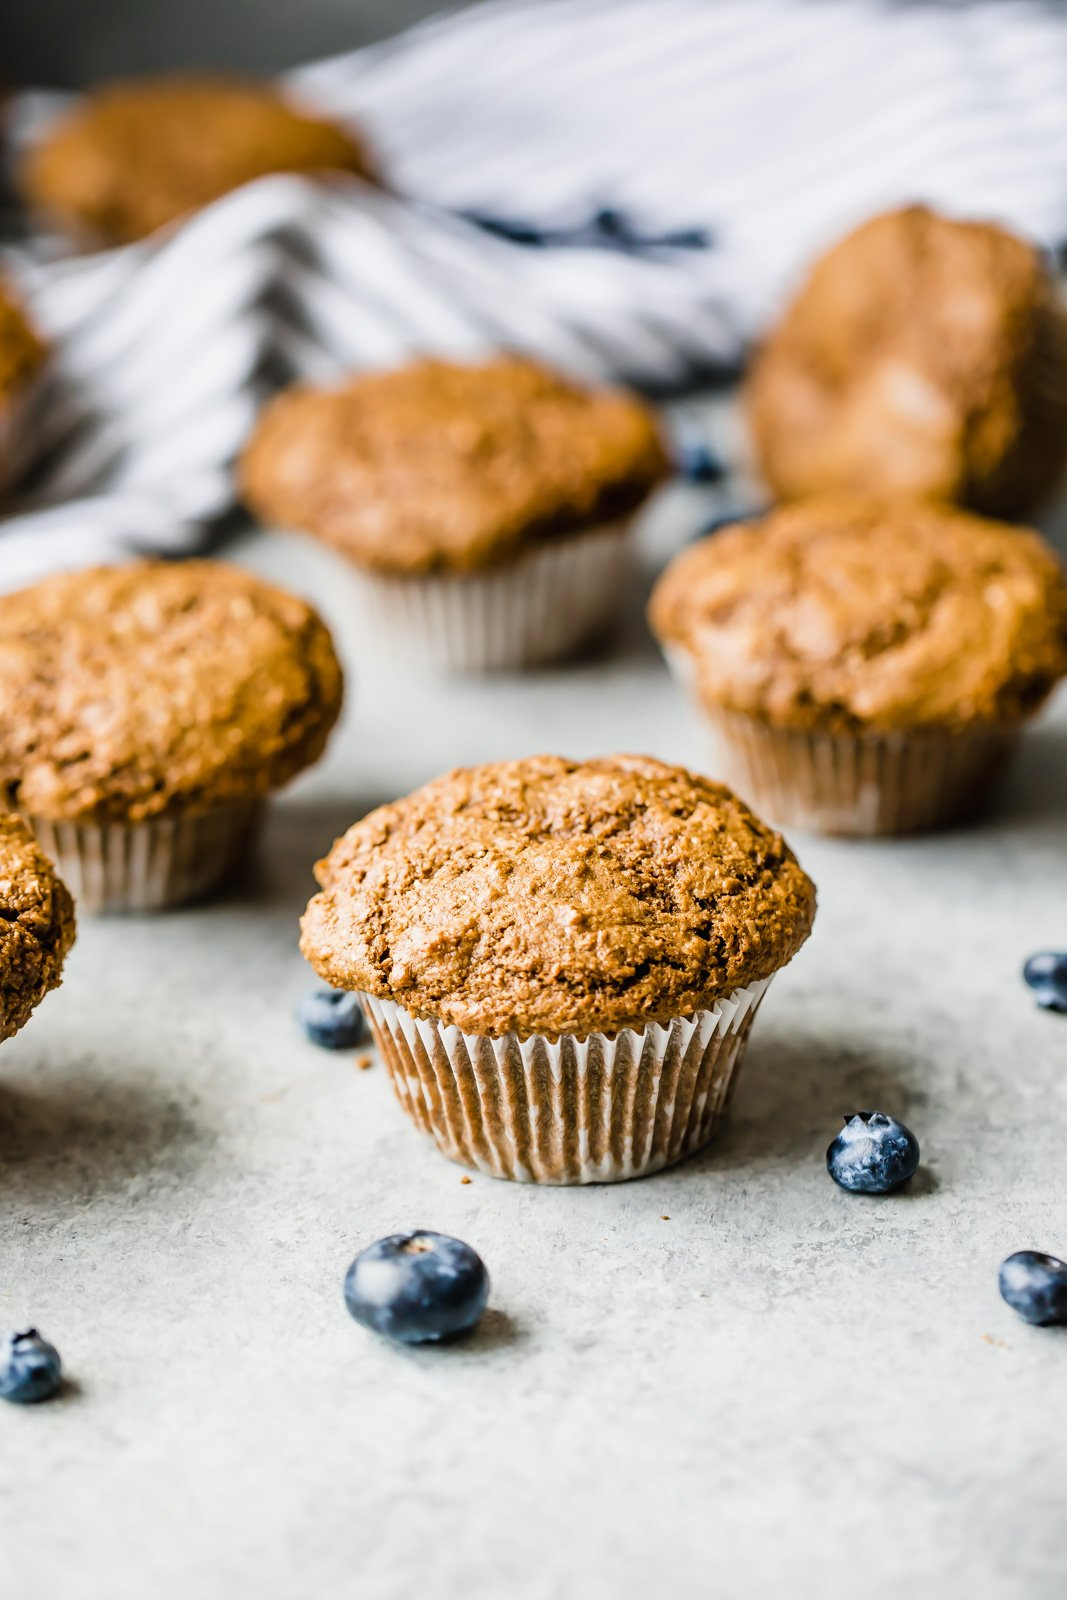 healthy bran muffin with blueberries on a grey board